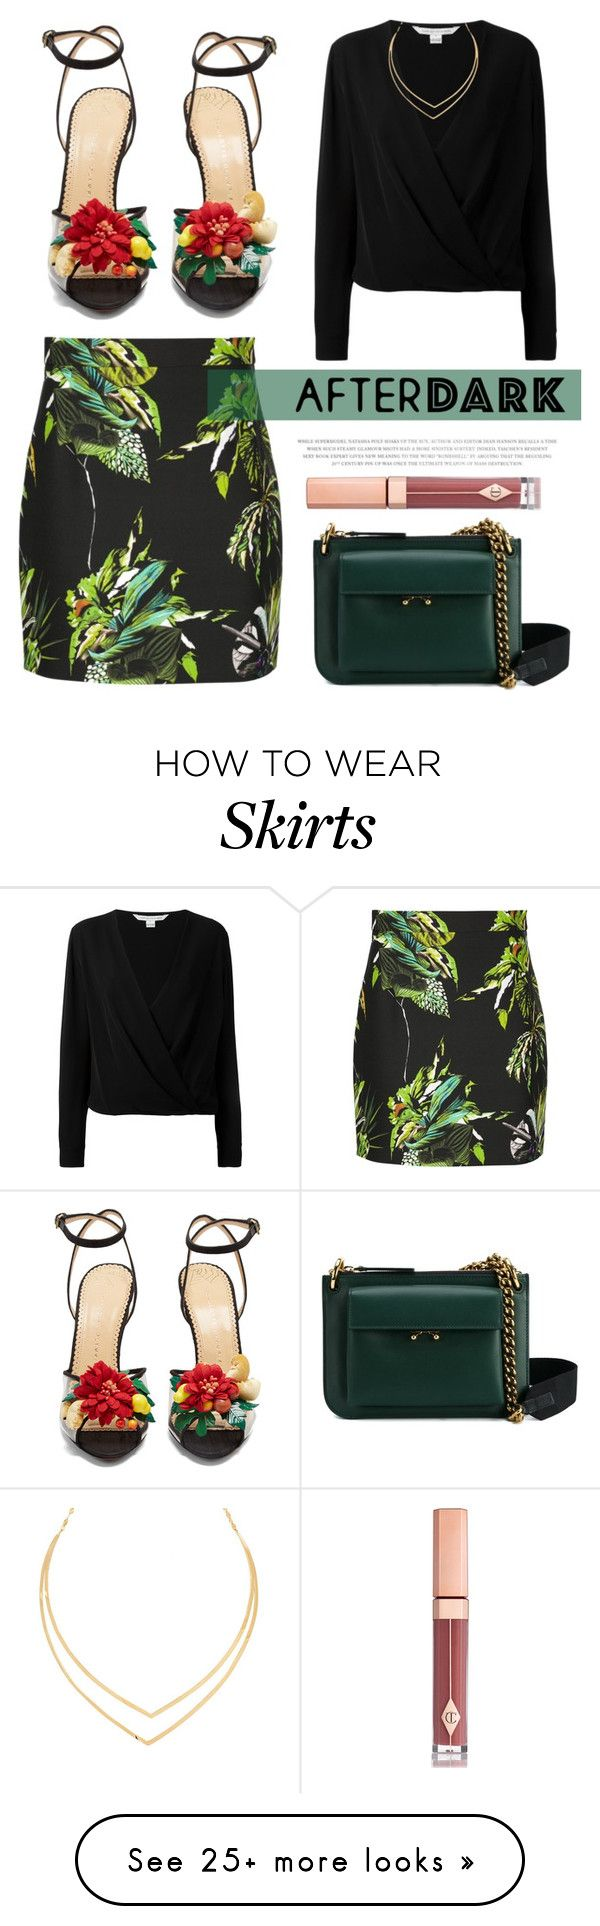 """""""Copacabana"""" by blueyed on Polyvore featuring Proenza Schouler, Marni, Diane Von Furstenberg, Charlotte Olympia, Lana and Charlotte Tilbury"""